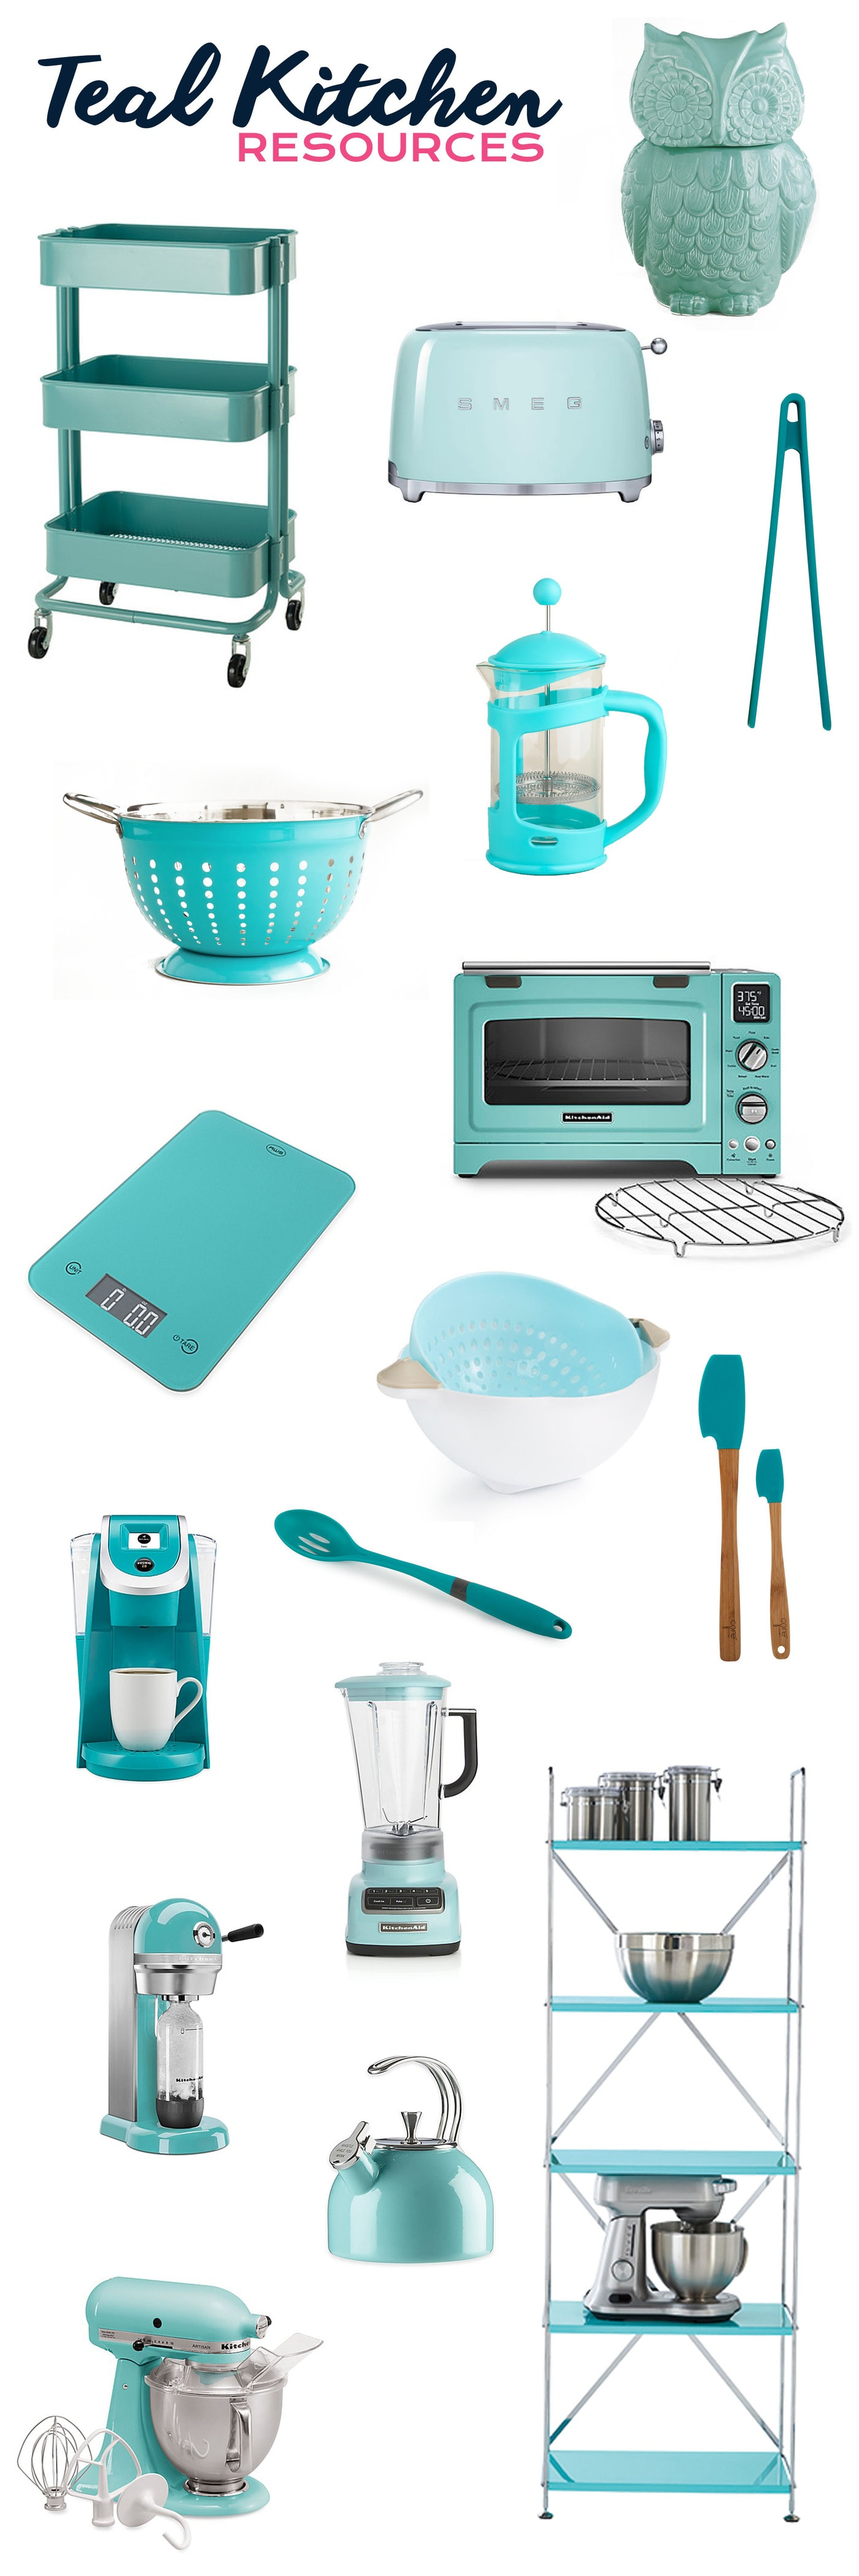 My favorite resources for teal kitchens choosing figs - Teal kitchen appliances ...